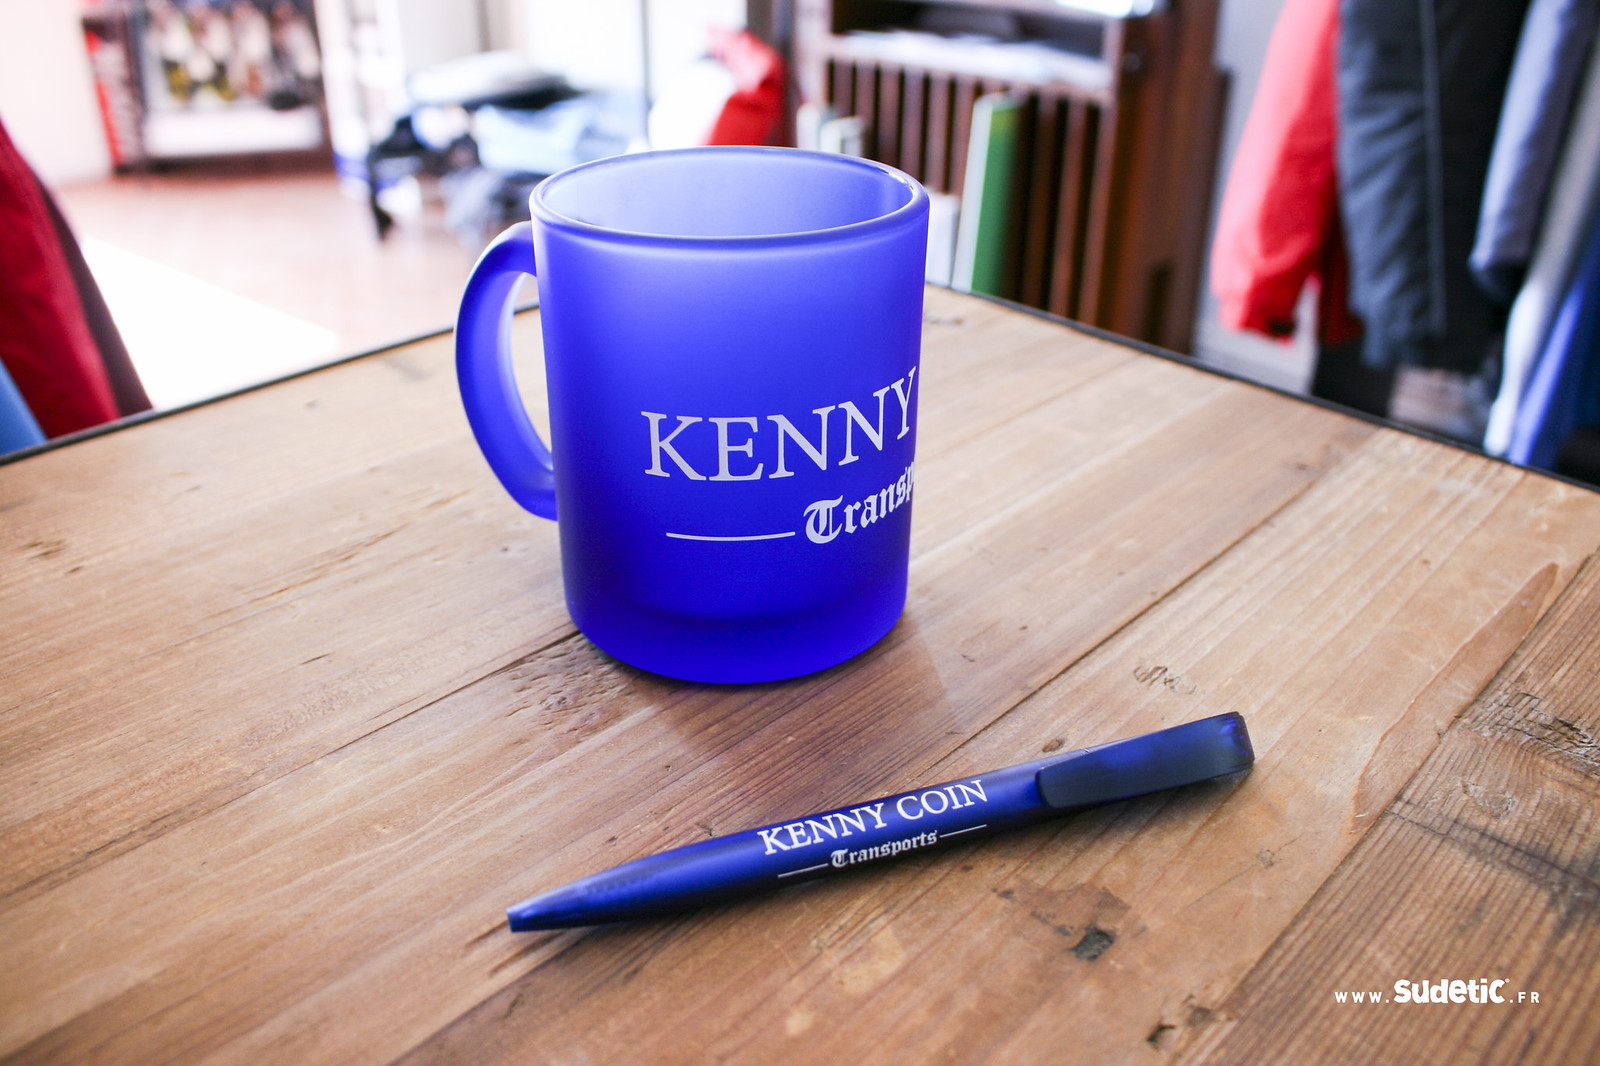 Sudetic Mug et Stylo Kenny Coin